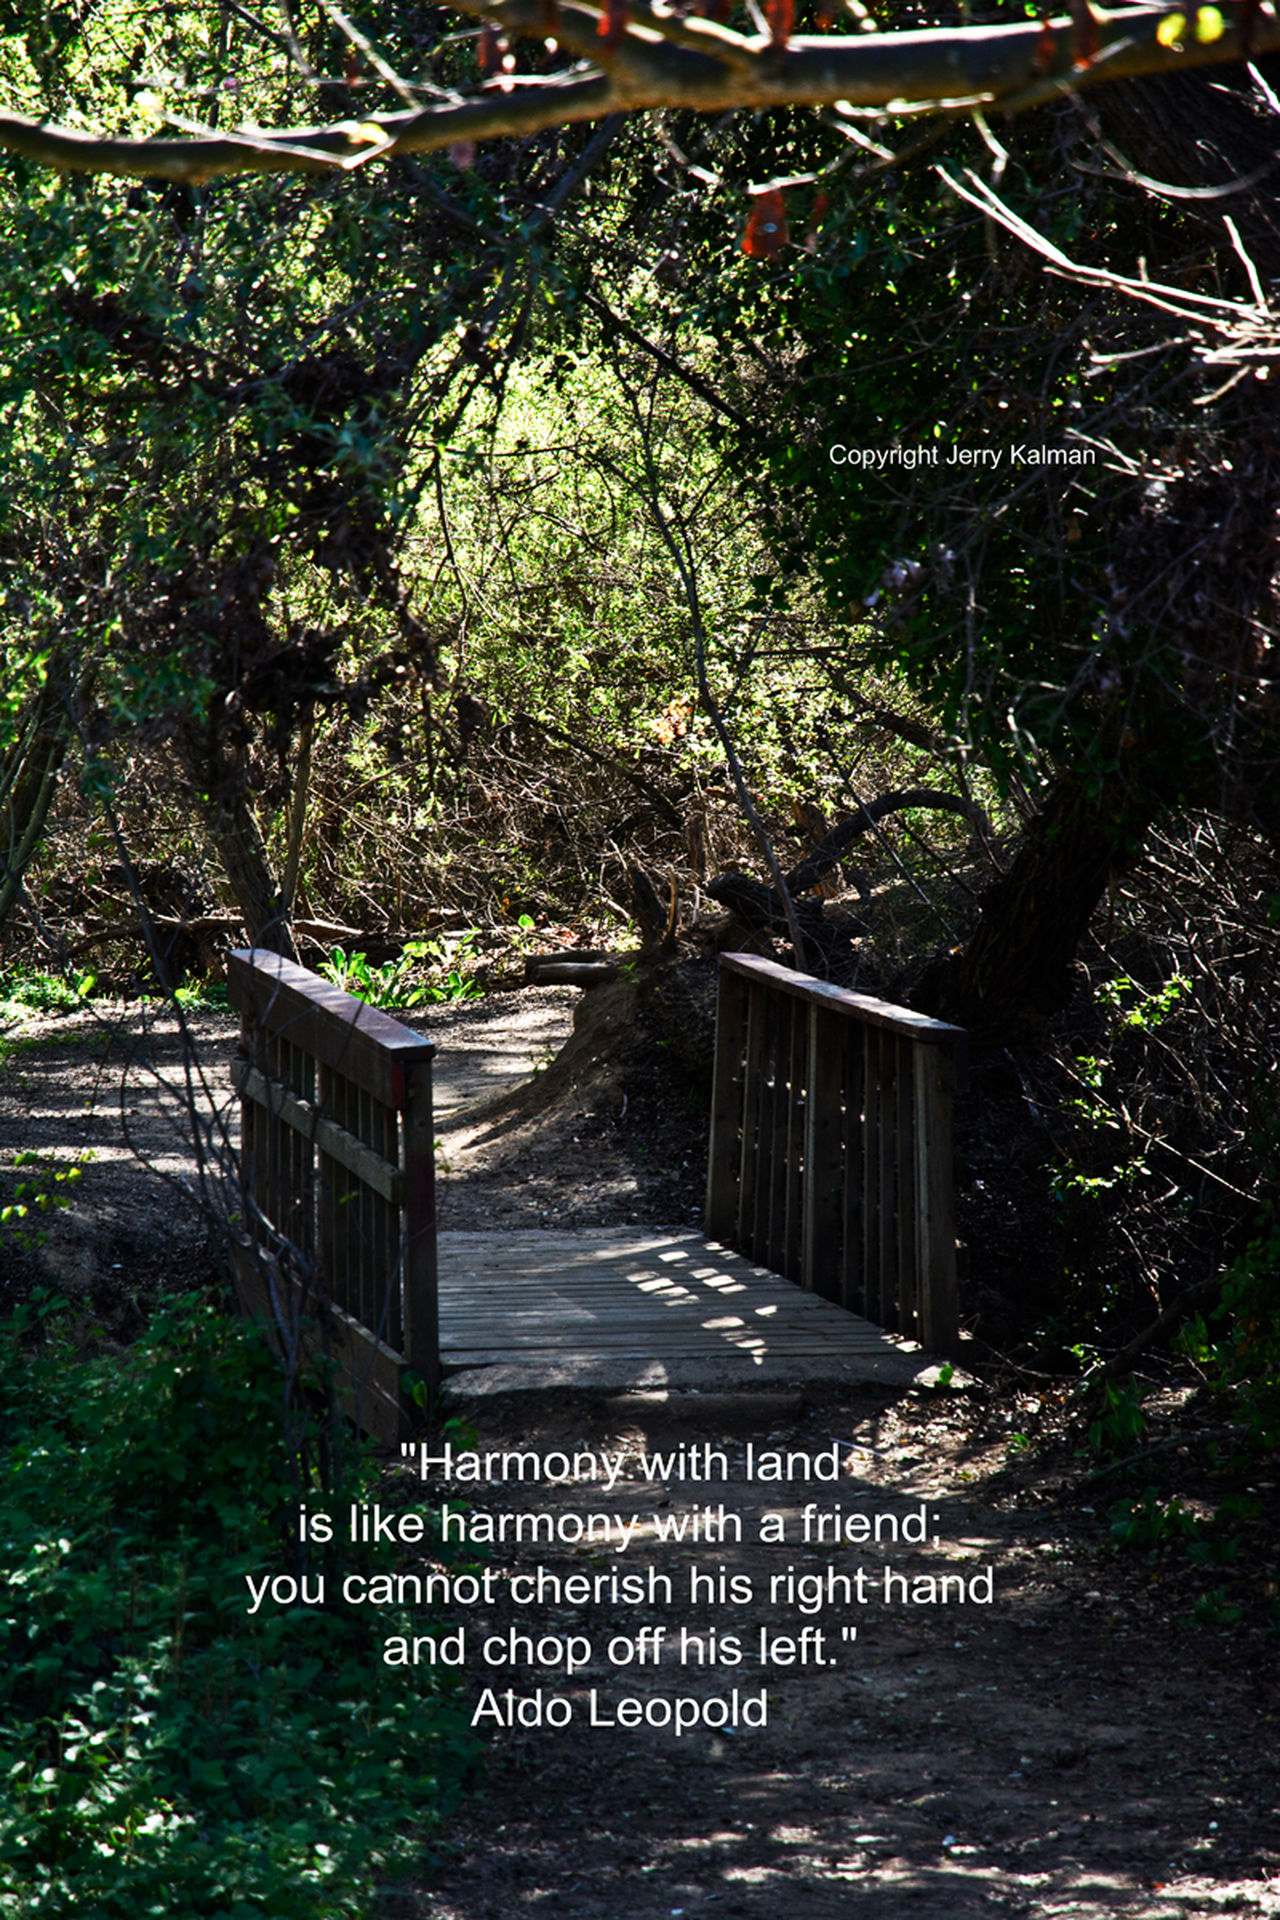 #Conservationist-author #AldoLeopold #quote on his birthday and a scene at #Fallbrook's noted conservation place, the #LosJilguerosPreserve maintained by #FallbrookLandConservancy. Aldo Leopol Connection Fallbrook Land Conservancy First Eyeem Photo Landscape Los Jilgueros Preser Path'brid Q